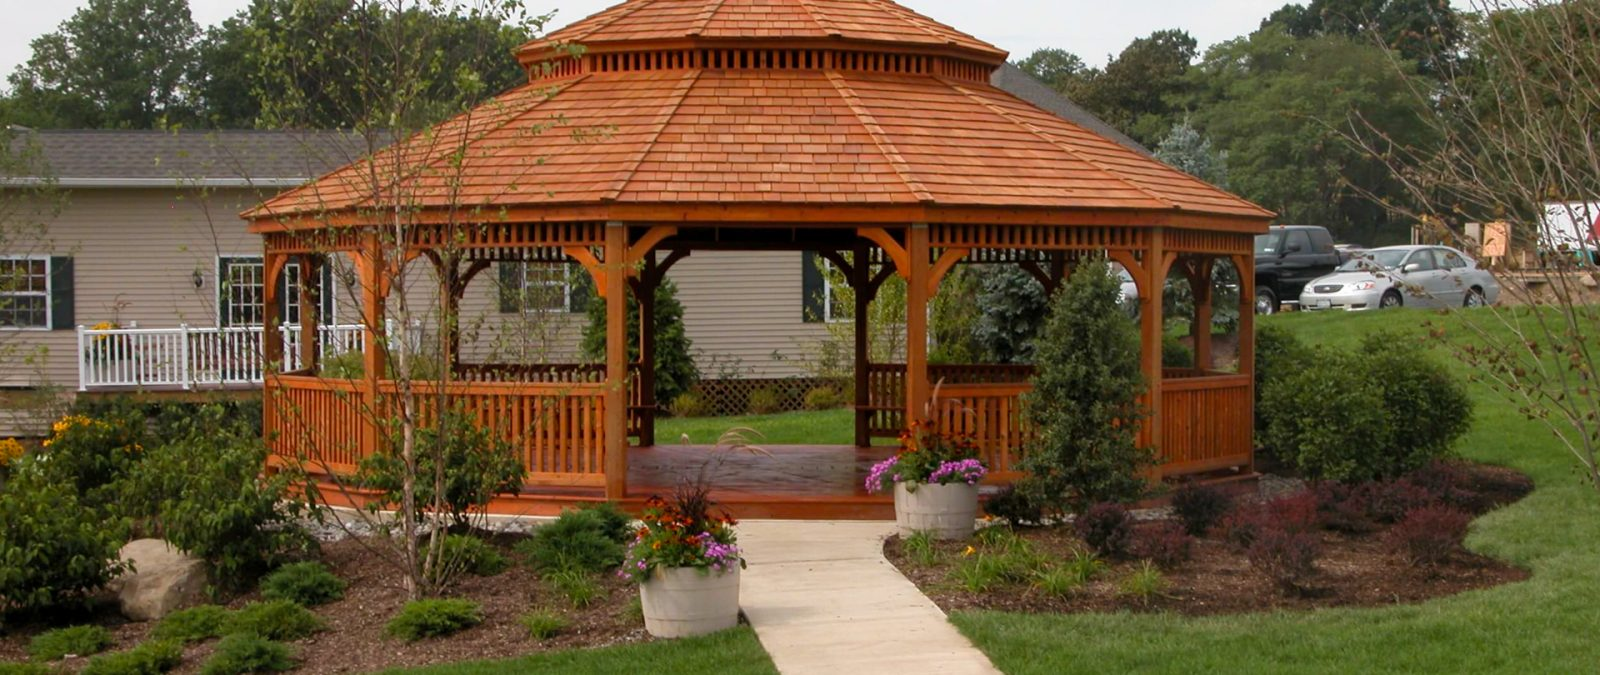 large dodecagon gazebo